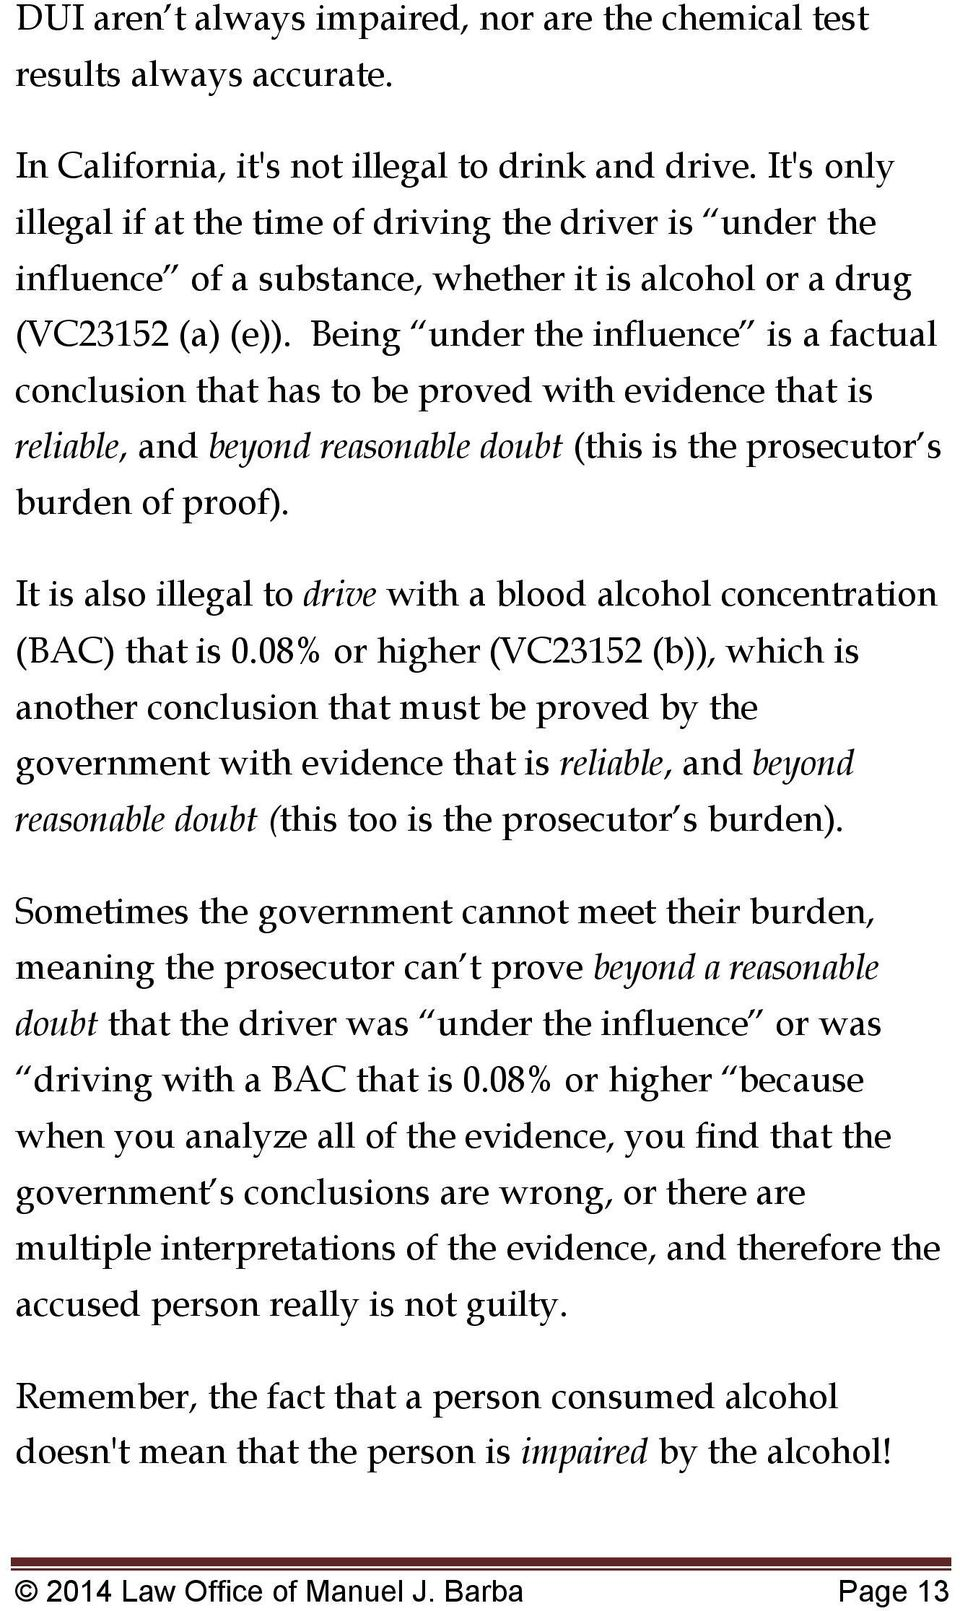 Being under the influence is a factual conclusion that has to be proved with evidence that is reliable, and beyond reasonable doubt (this is the prosecutor s burden of proof).